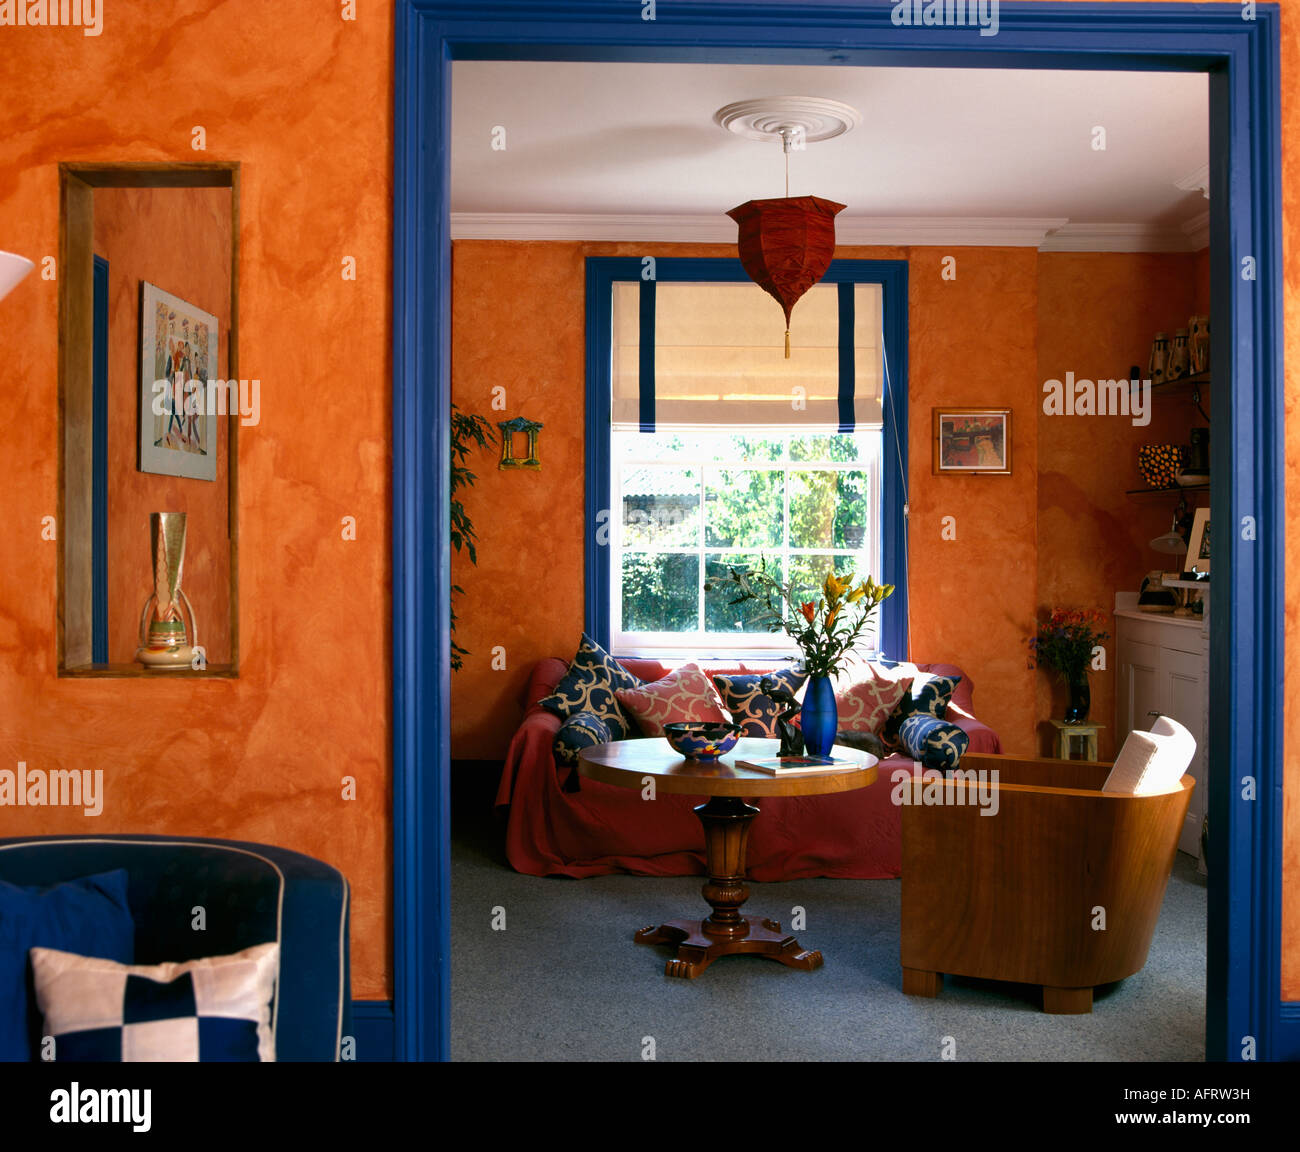 Blue and orange living room - Painted Sponge Effect On Orange Walls Of Living Room With Blue Paintwork Stock Photo